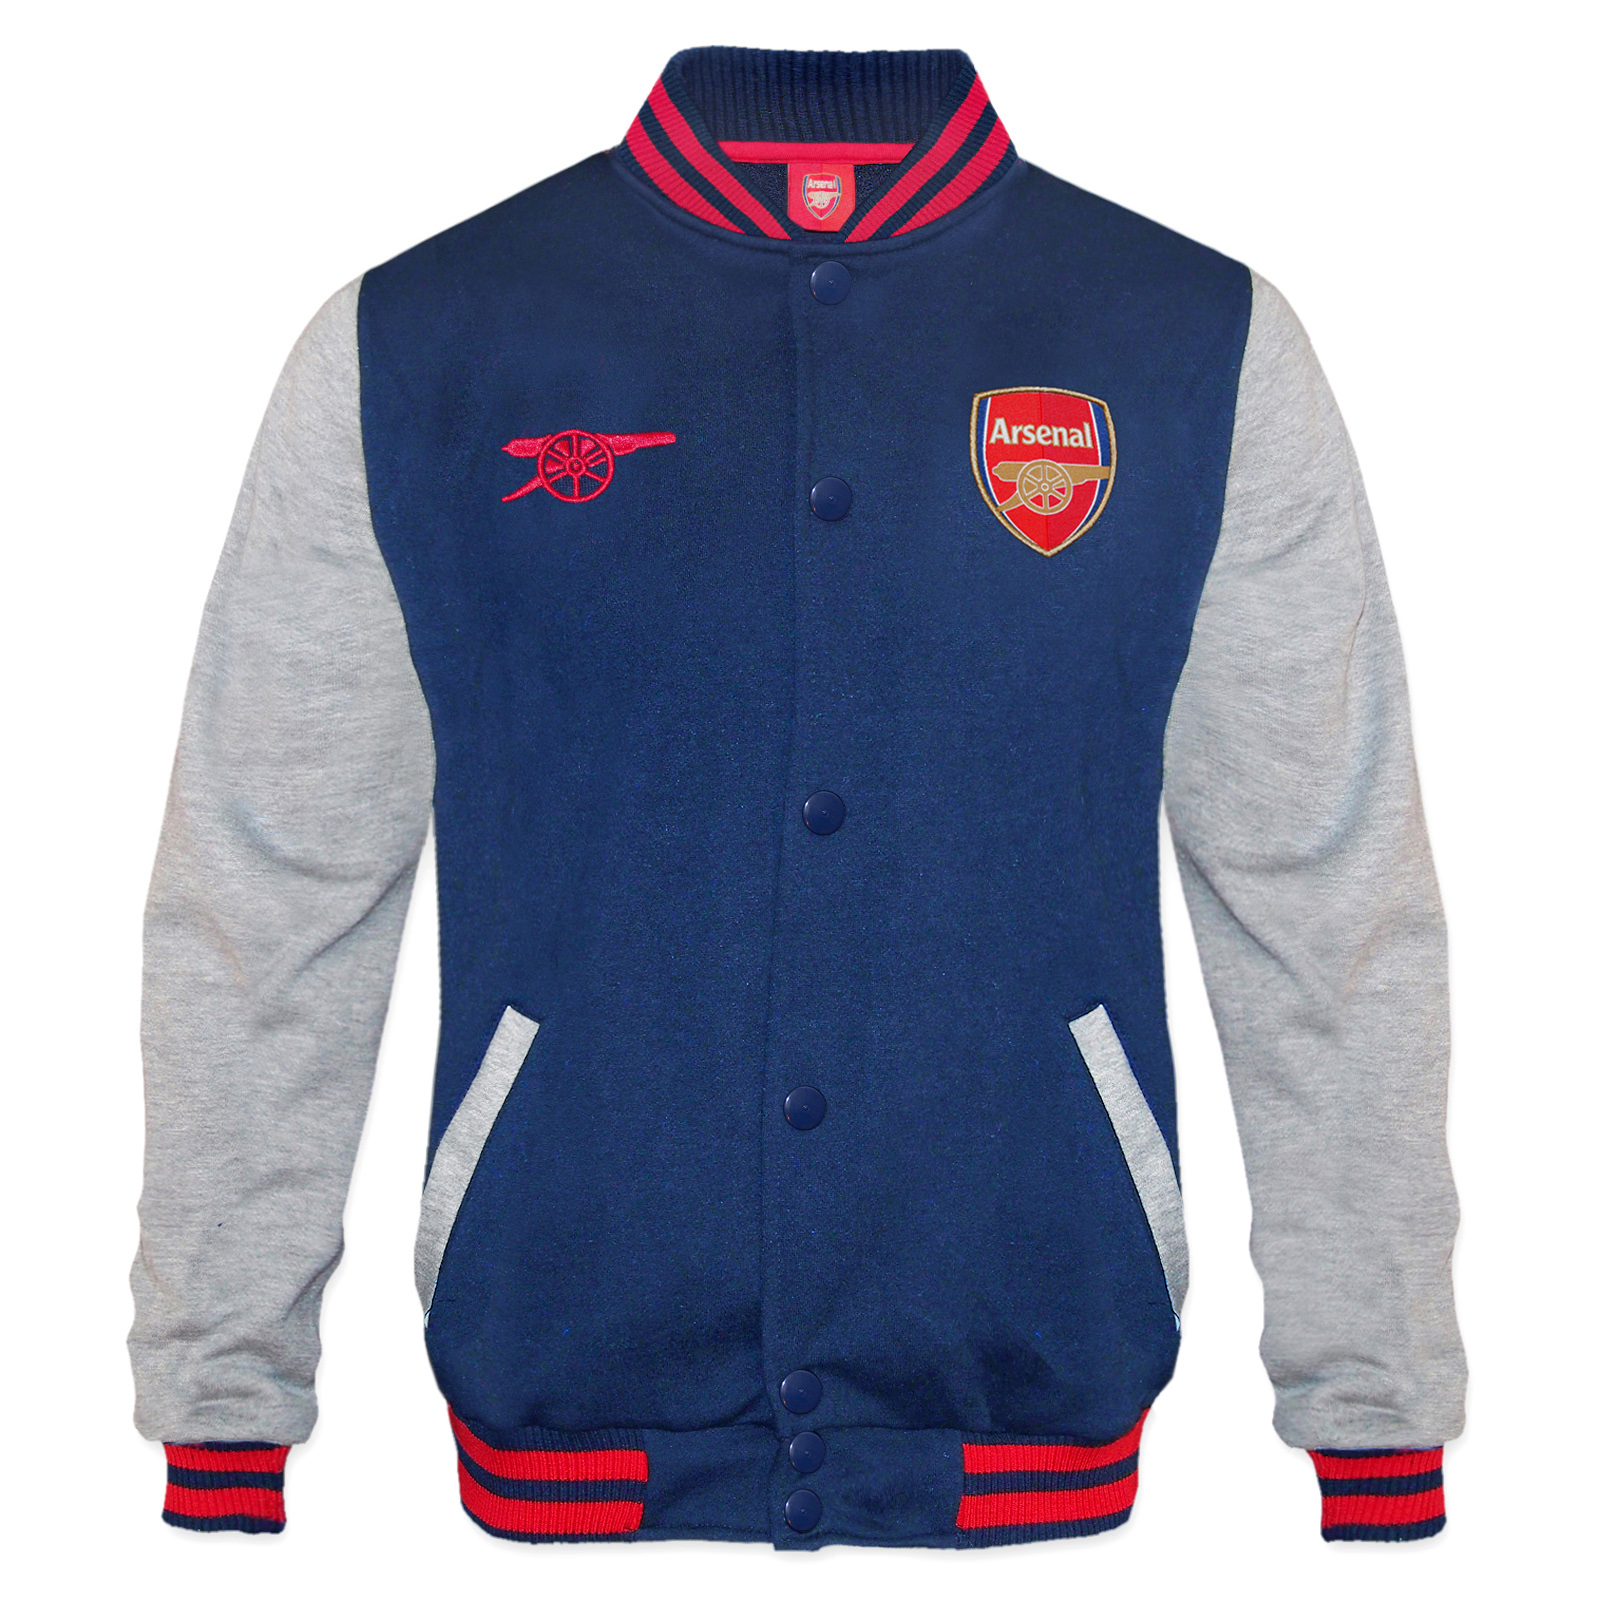 finest selection 49854 19dd3 Details about Arsenal Football Club Official Soccer Gift Mens Retro Varsity  Baseball Jacket